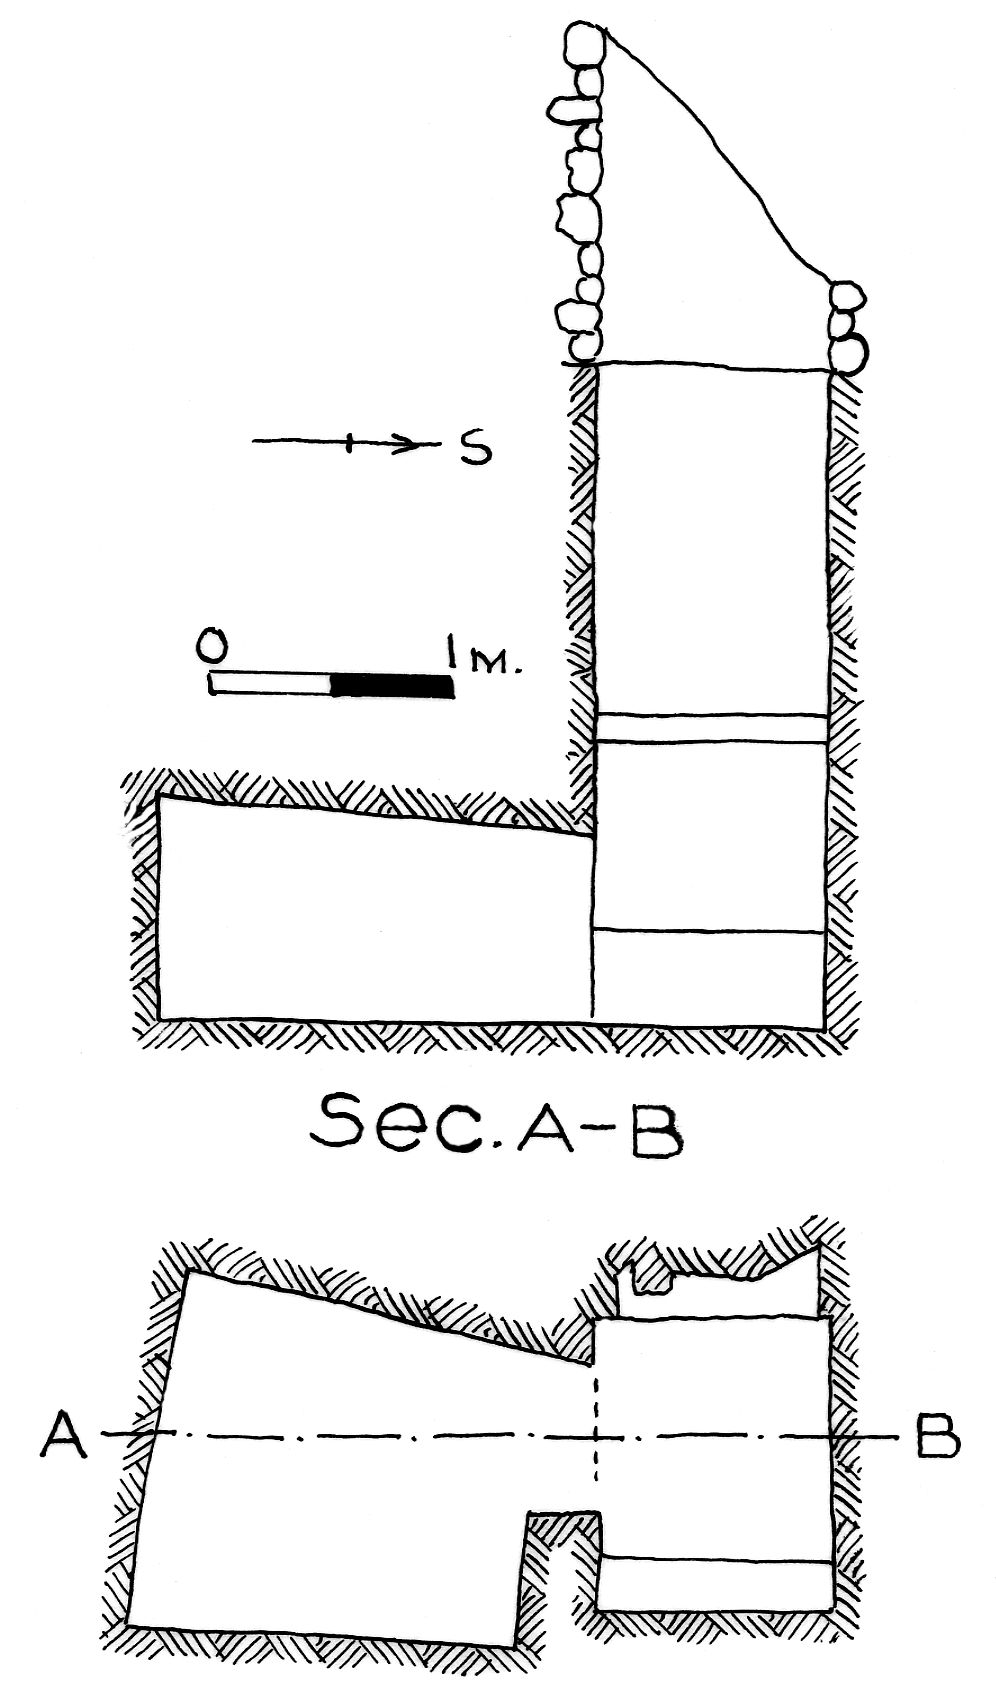 Maps and plans: G 7842, Shaft A